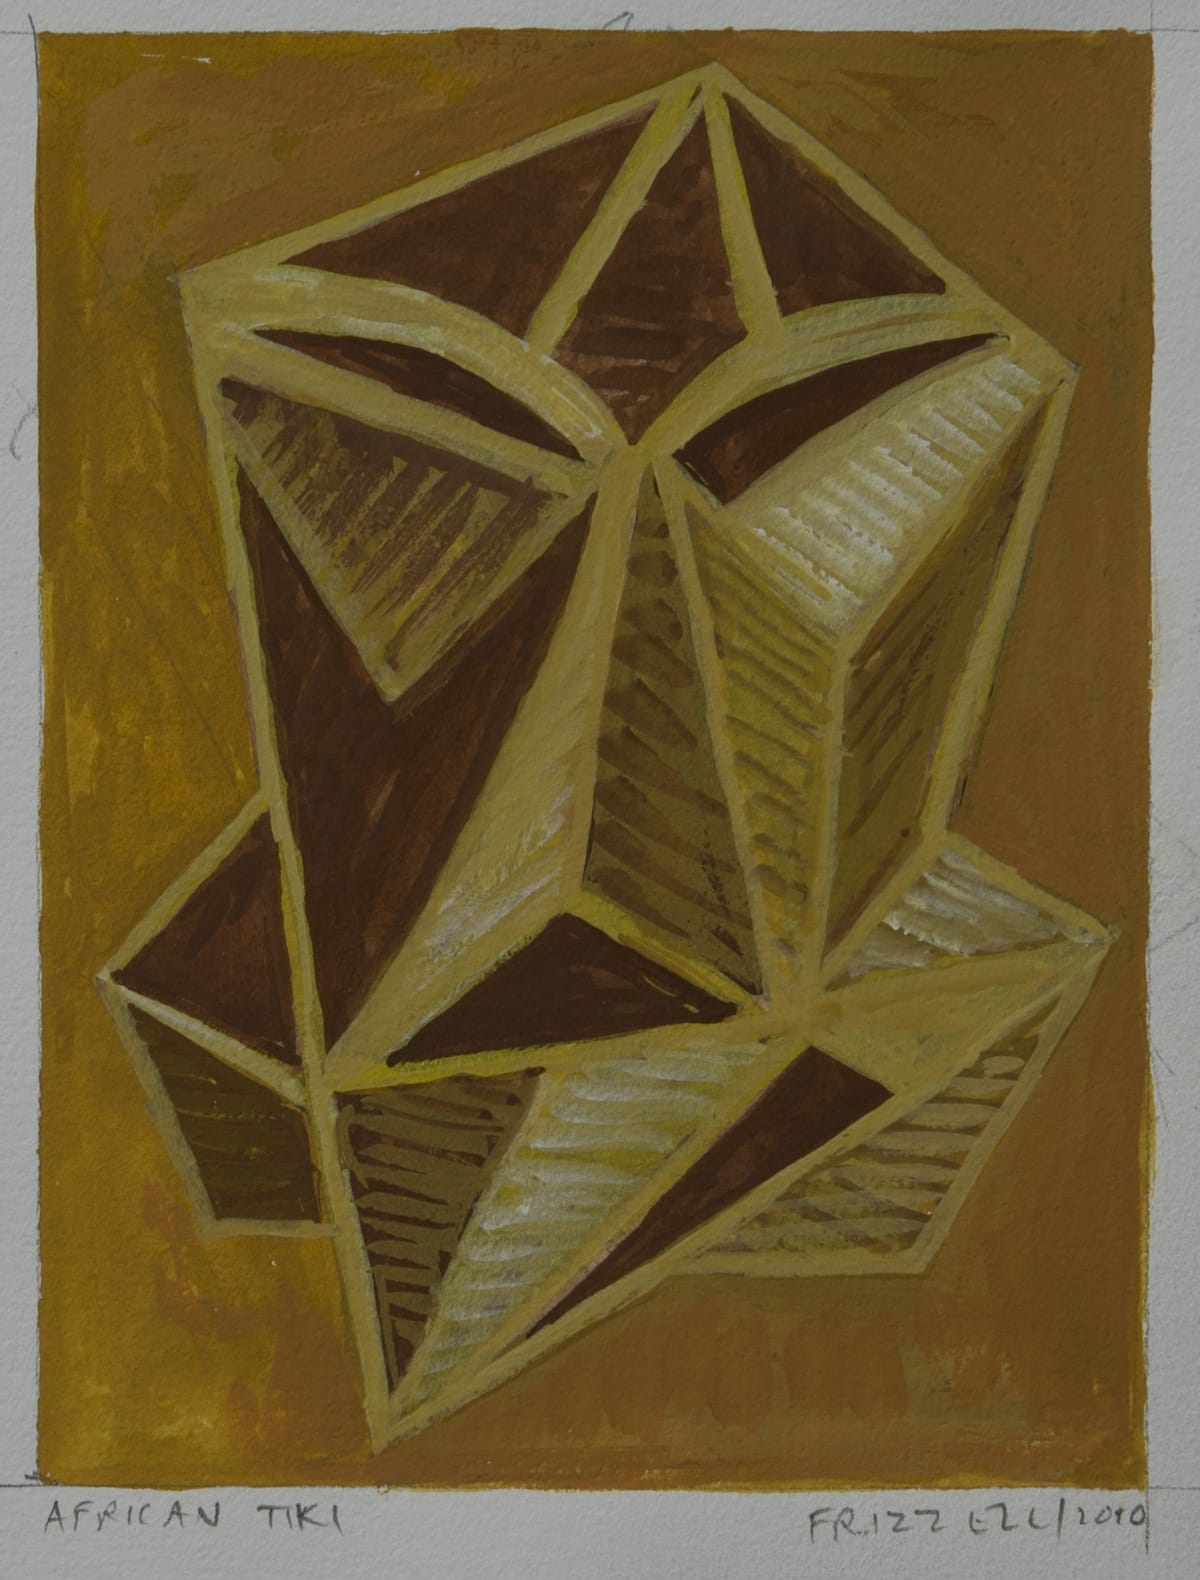 Dick FRIZZELL African Tiki, 2010 Gouache and pencil on paper 6.5 x 4.9 in 16.5 x 12.5cm 47 x 35.5cm (framed)